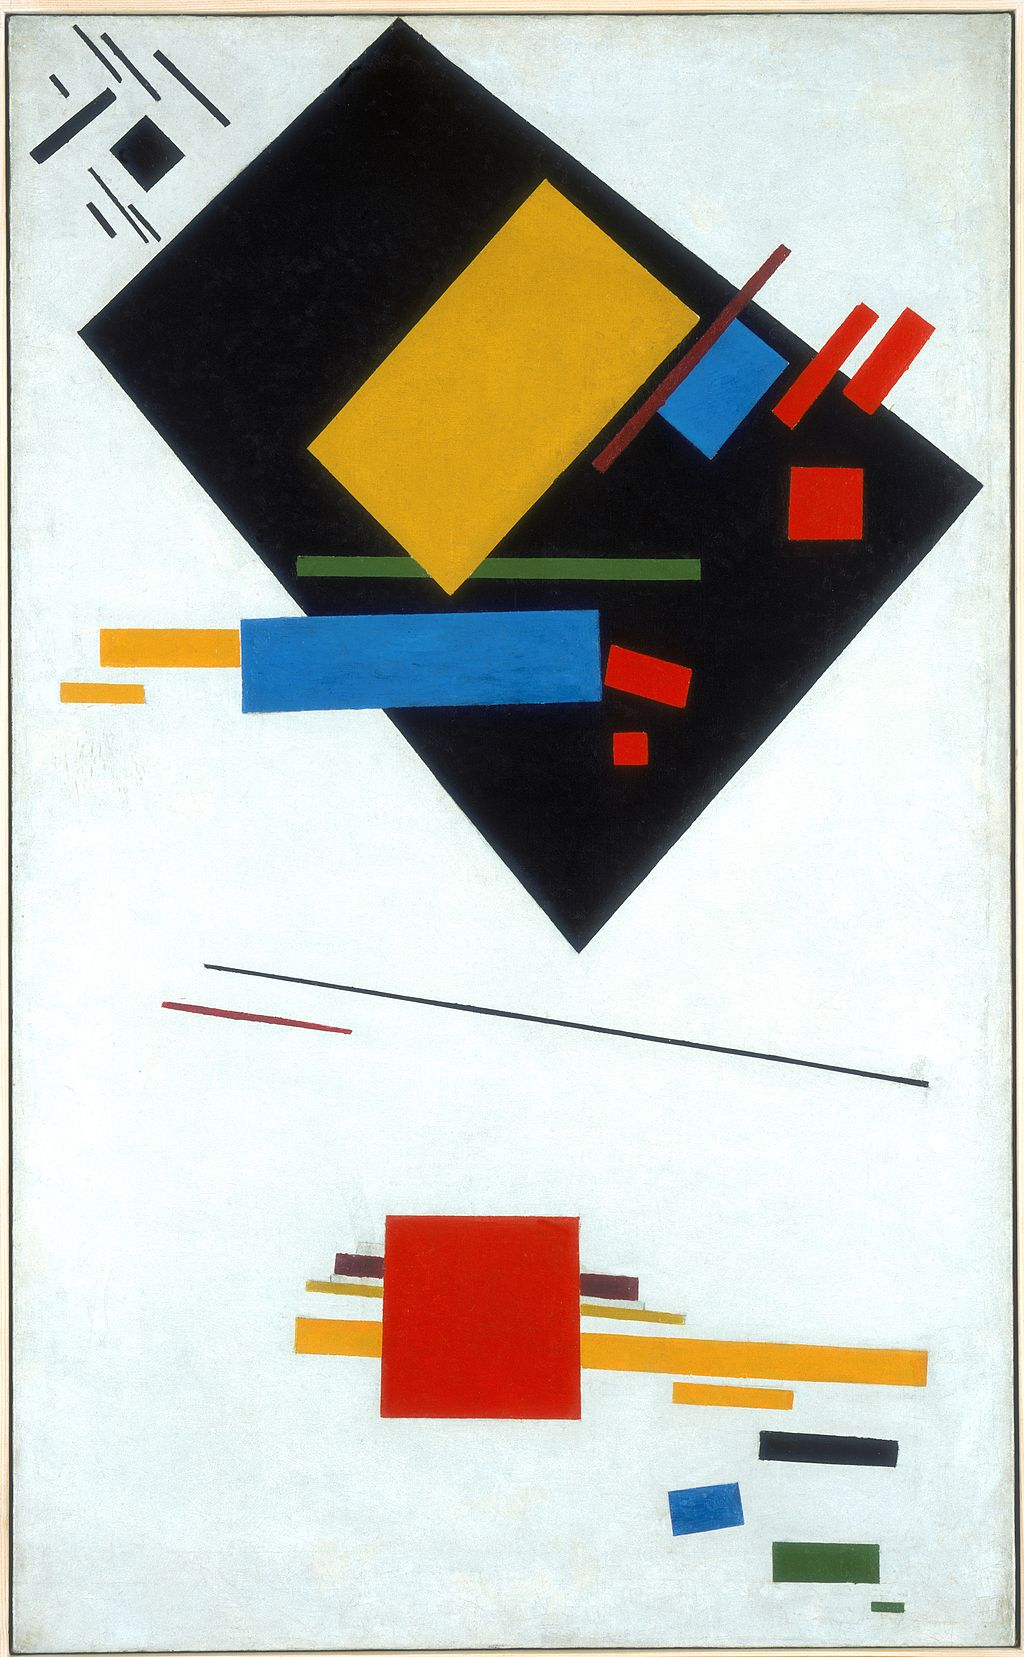 """Kazimir Malevich, Suprematist painting (with black trapezium and red square), 1915, oil on canvas, 40"""" x 24½"""", Stedelijk Museum, Amsterdam, Public Domain via Wikimedia Commons."""